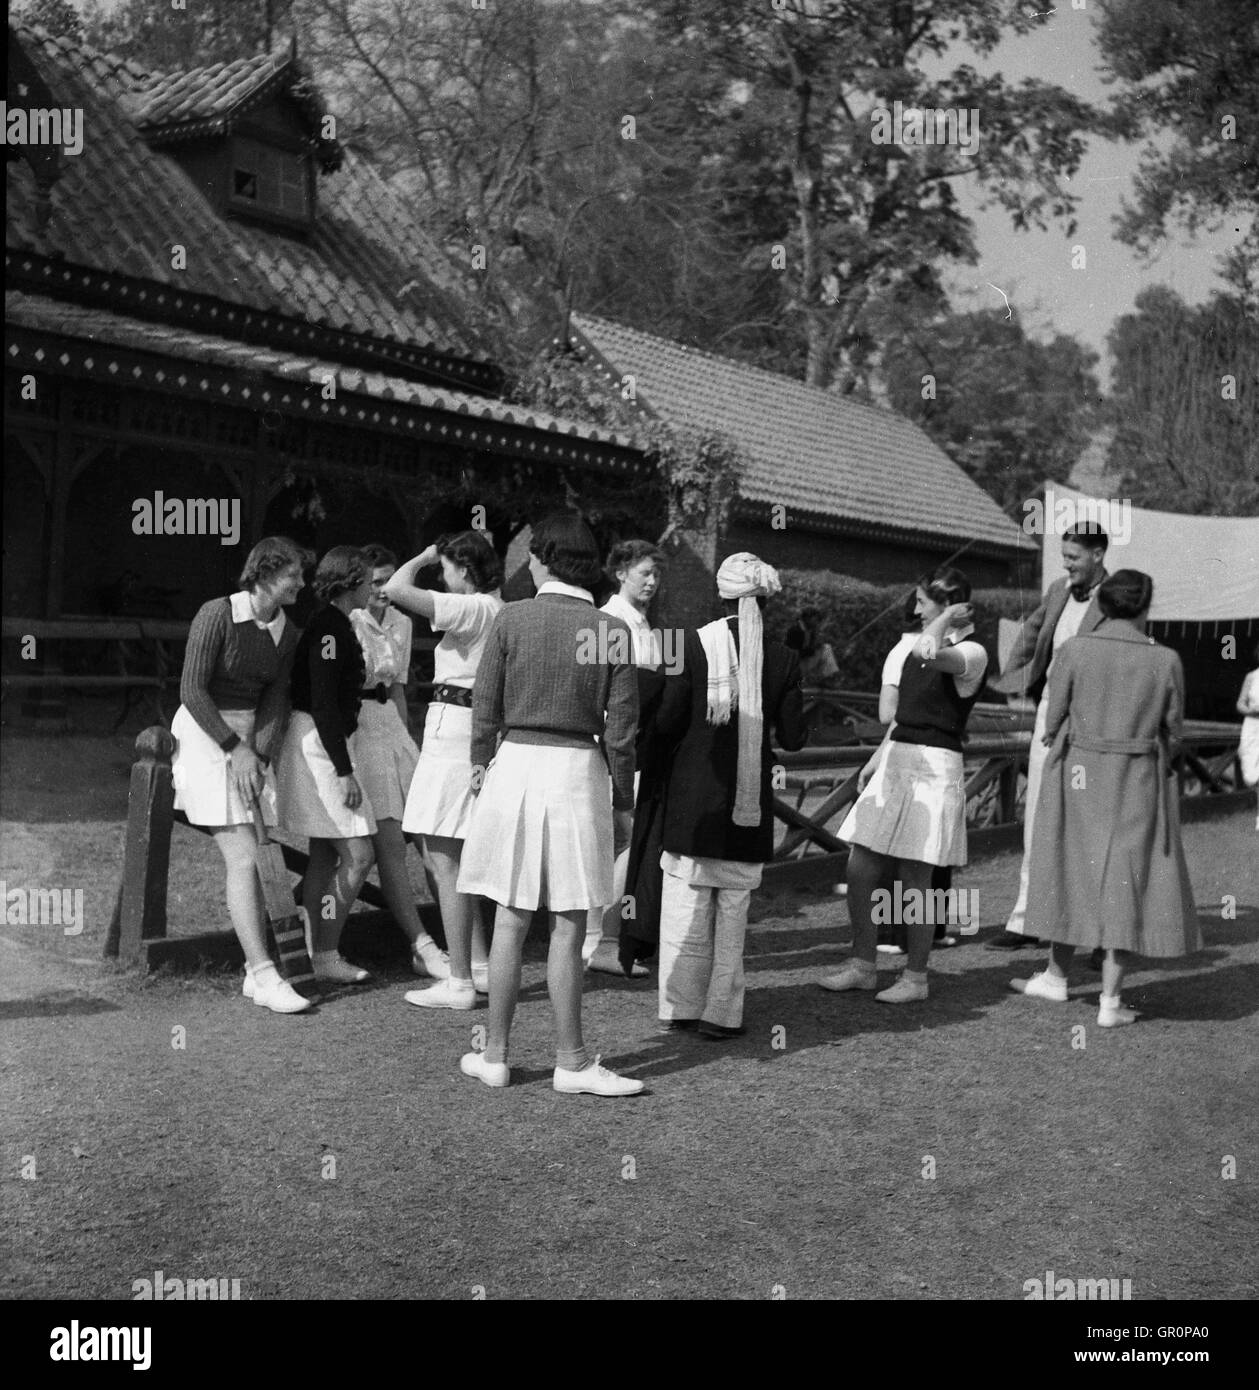 1930s, historical, local ladies cricket match in Lahore, Pakistan. Female players gather outside pavilion - Stock Image